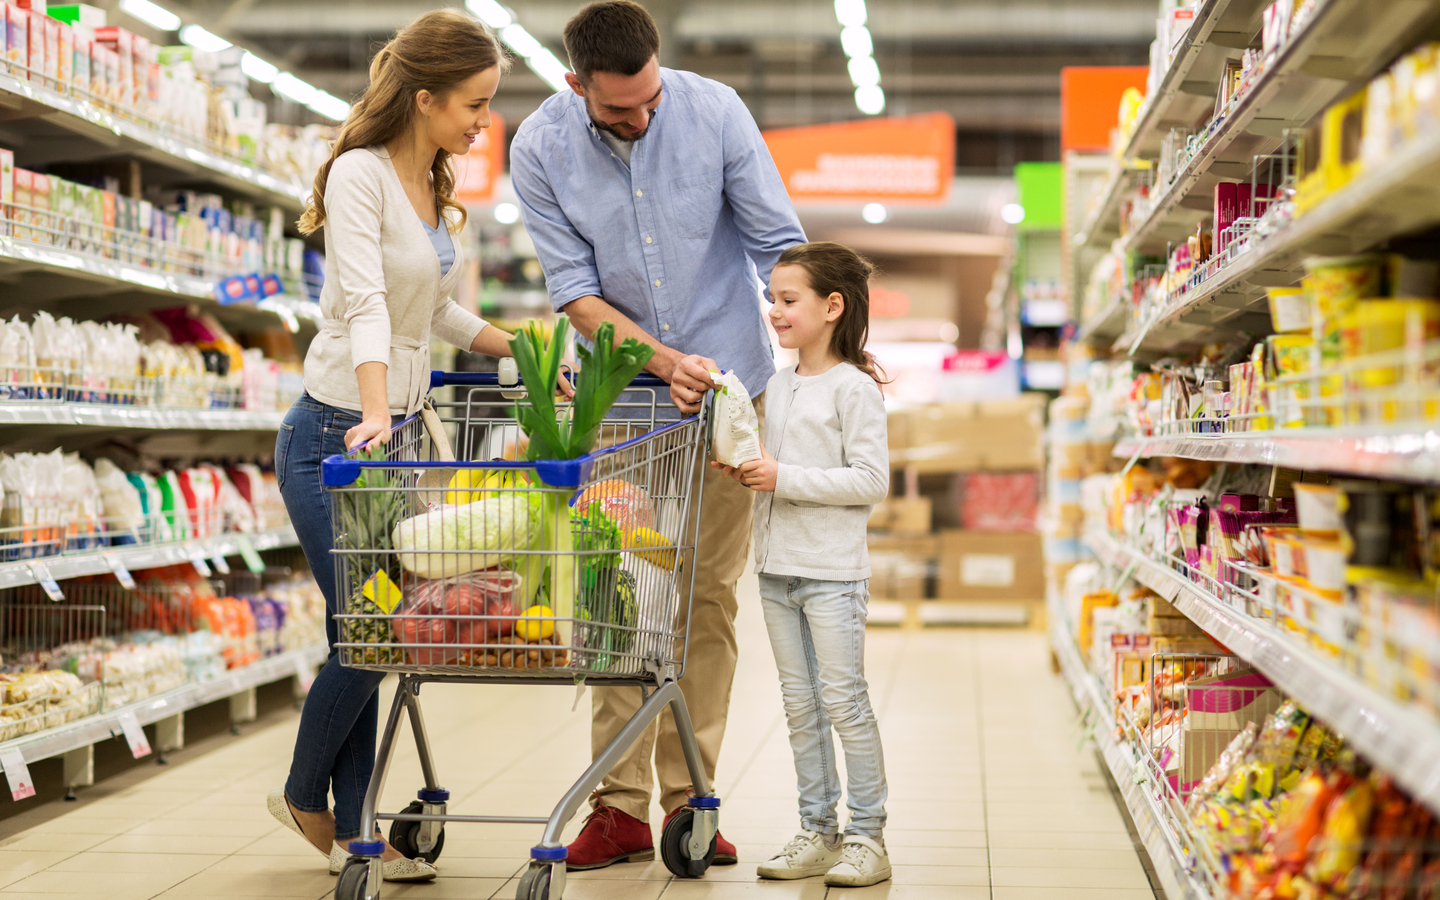 A family purchasing everyday essentials at a supermarket